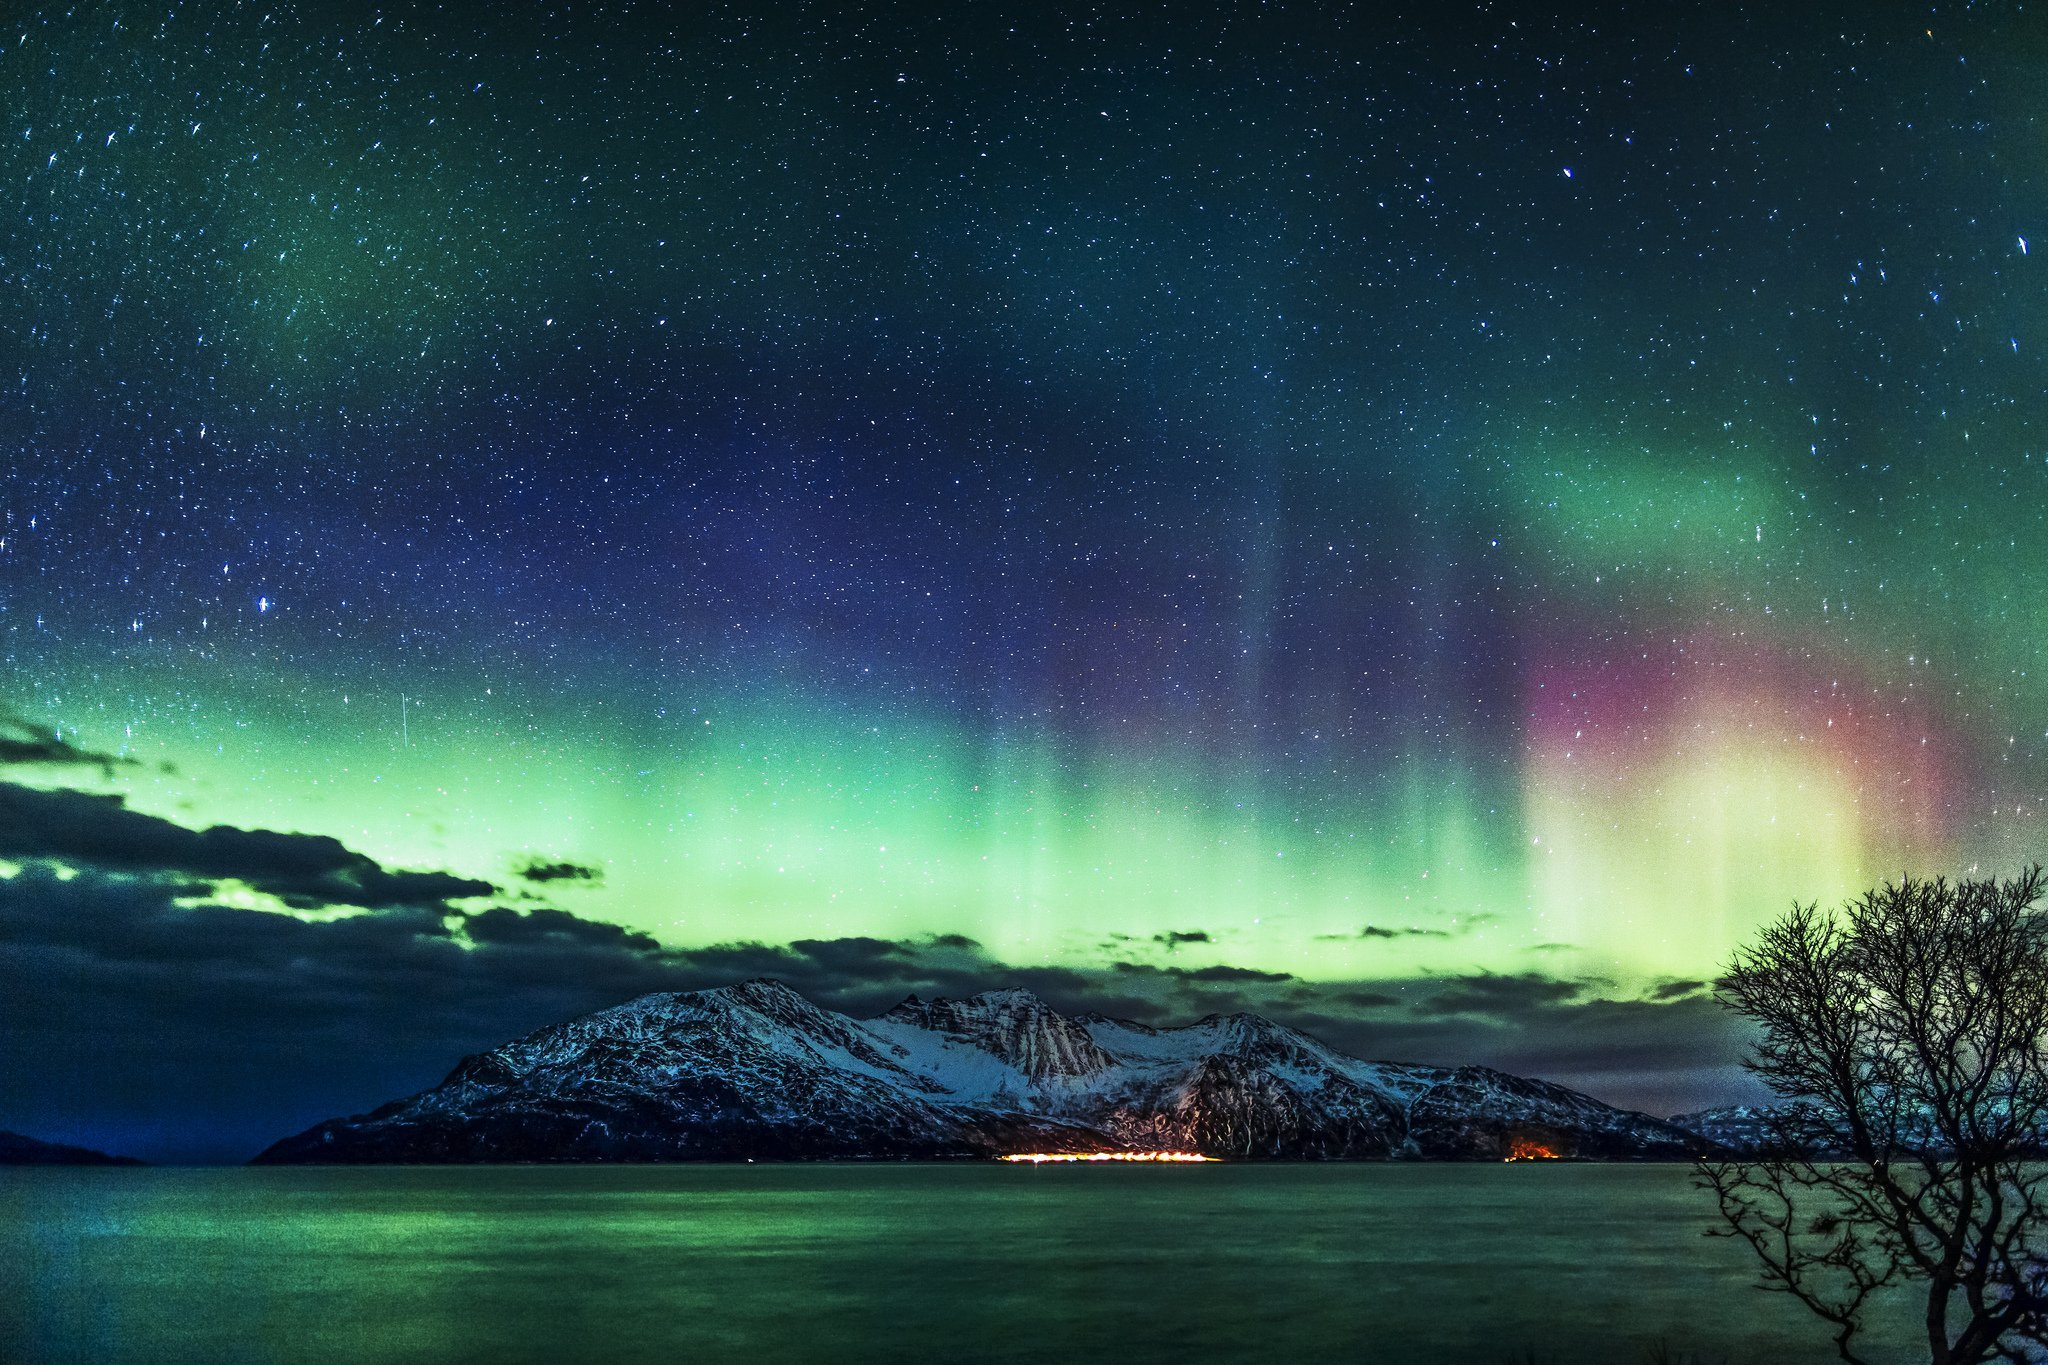 alaska northern lights wallpaper wallpapersafari. Black Bedroom Furniture Sets. Home Design Ideas